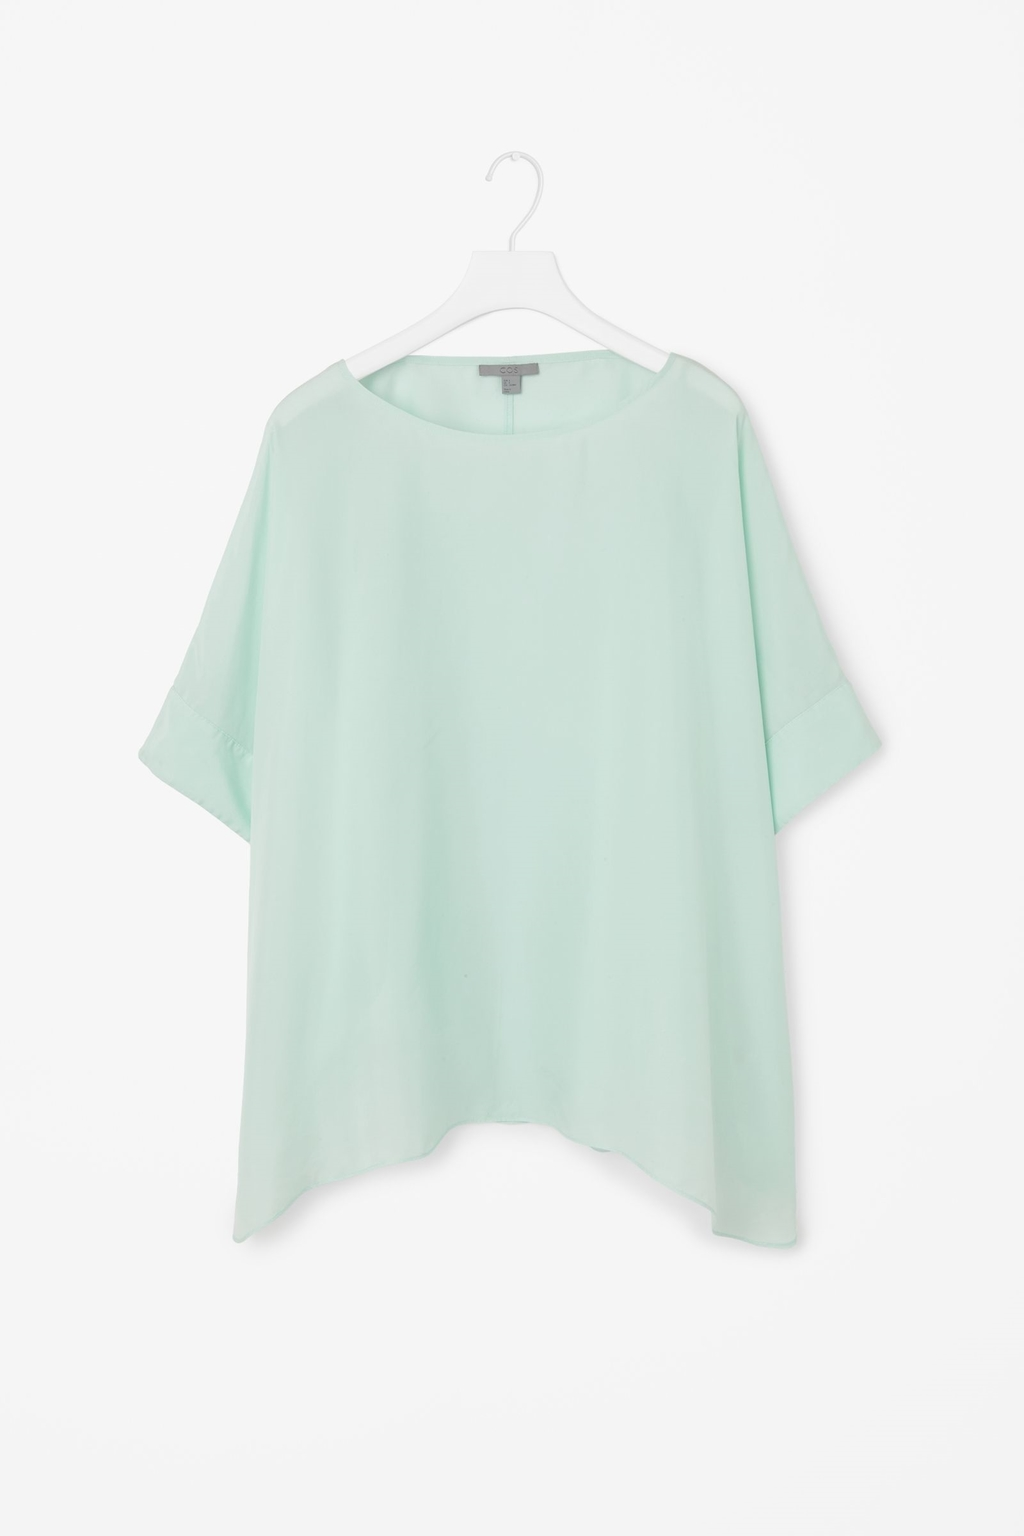 Oversized Silk Top - neckline: round neck; sleeve style: dolman/batwing; pattern: plain; predominant colour: pistachio; occasions: casual, evening, creative work; length: standard; style: top; fibres: silk - 100%; fit: loose; sleeve length: short sleeve; texture group: silky - light; pattern type: fabric; trends: floaty fantasies; season: s/s 2015; wardrobe: highlight